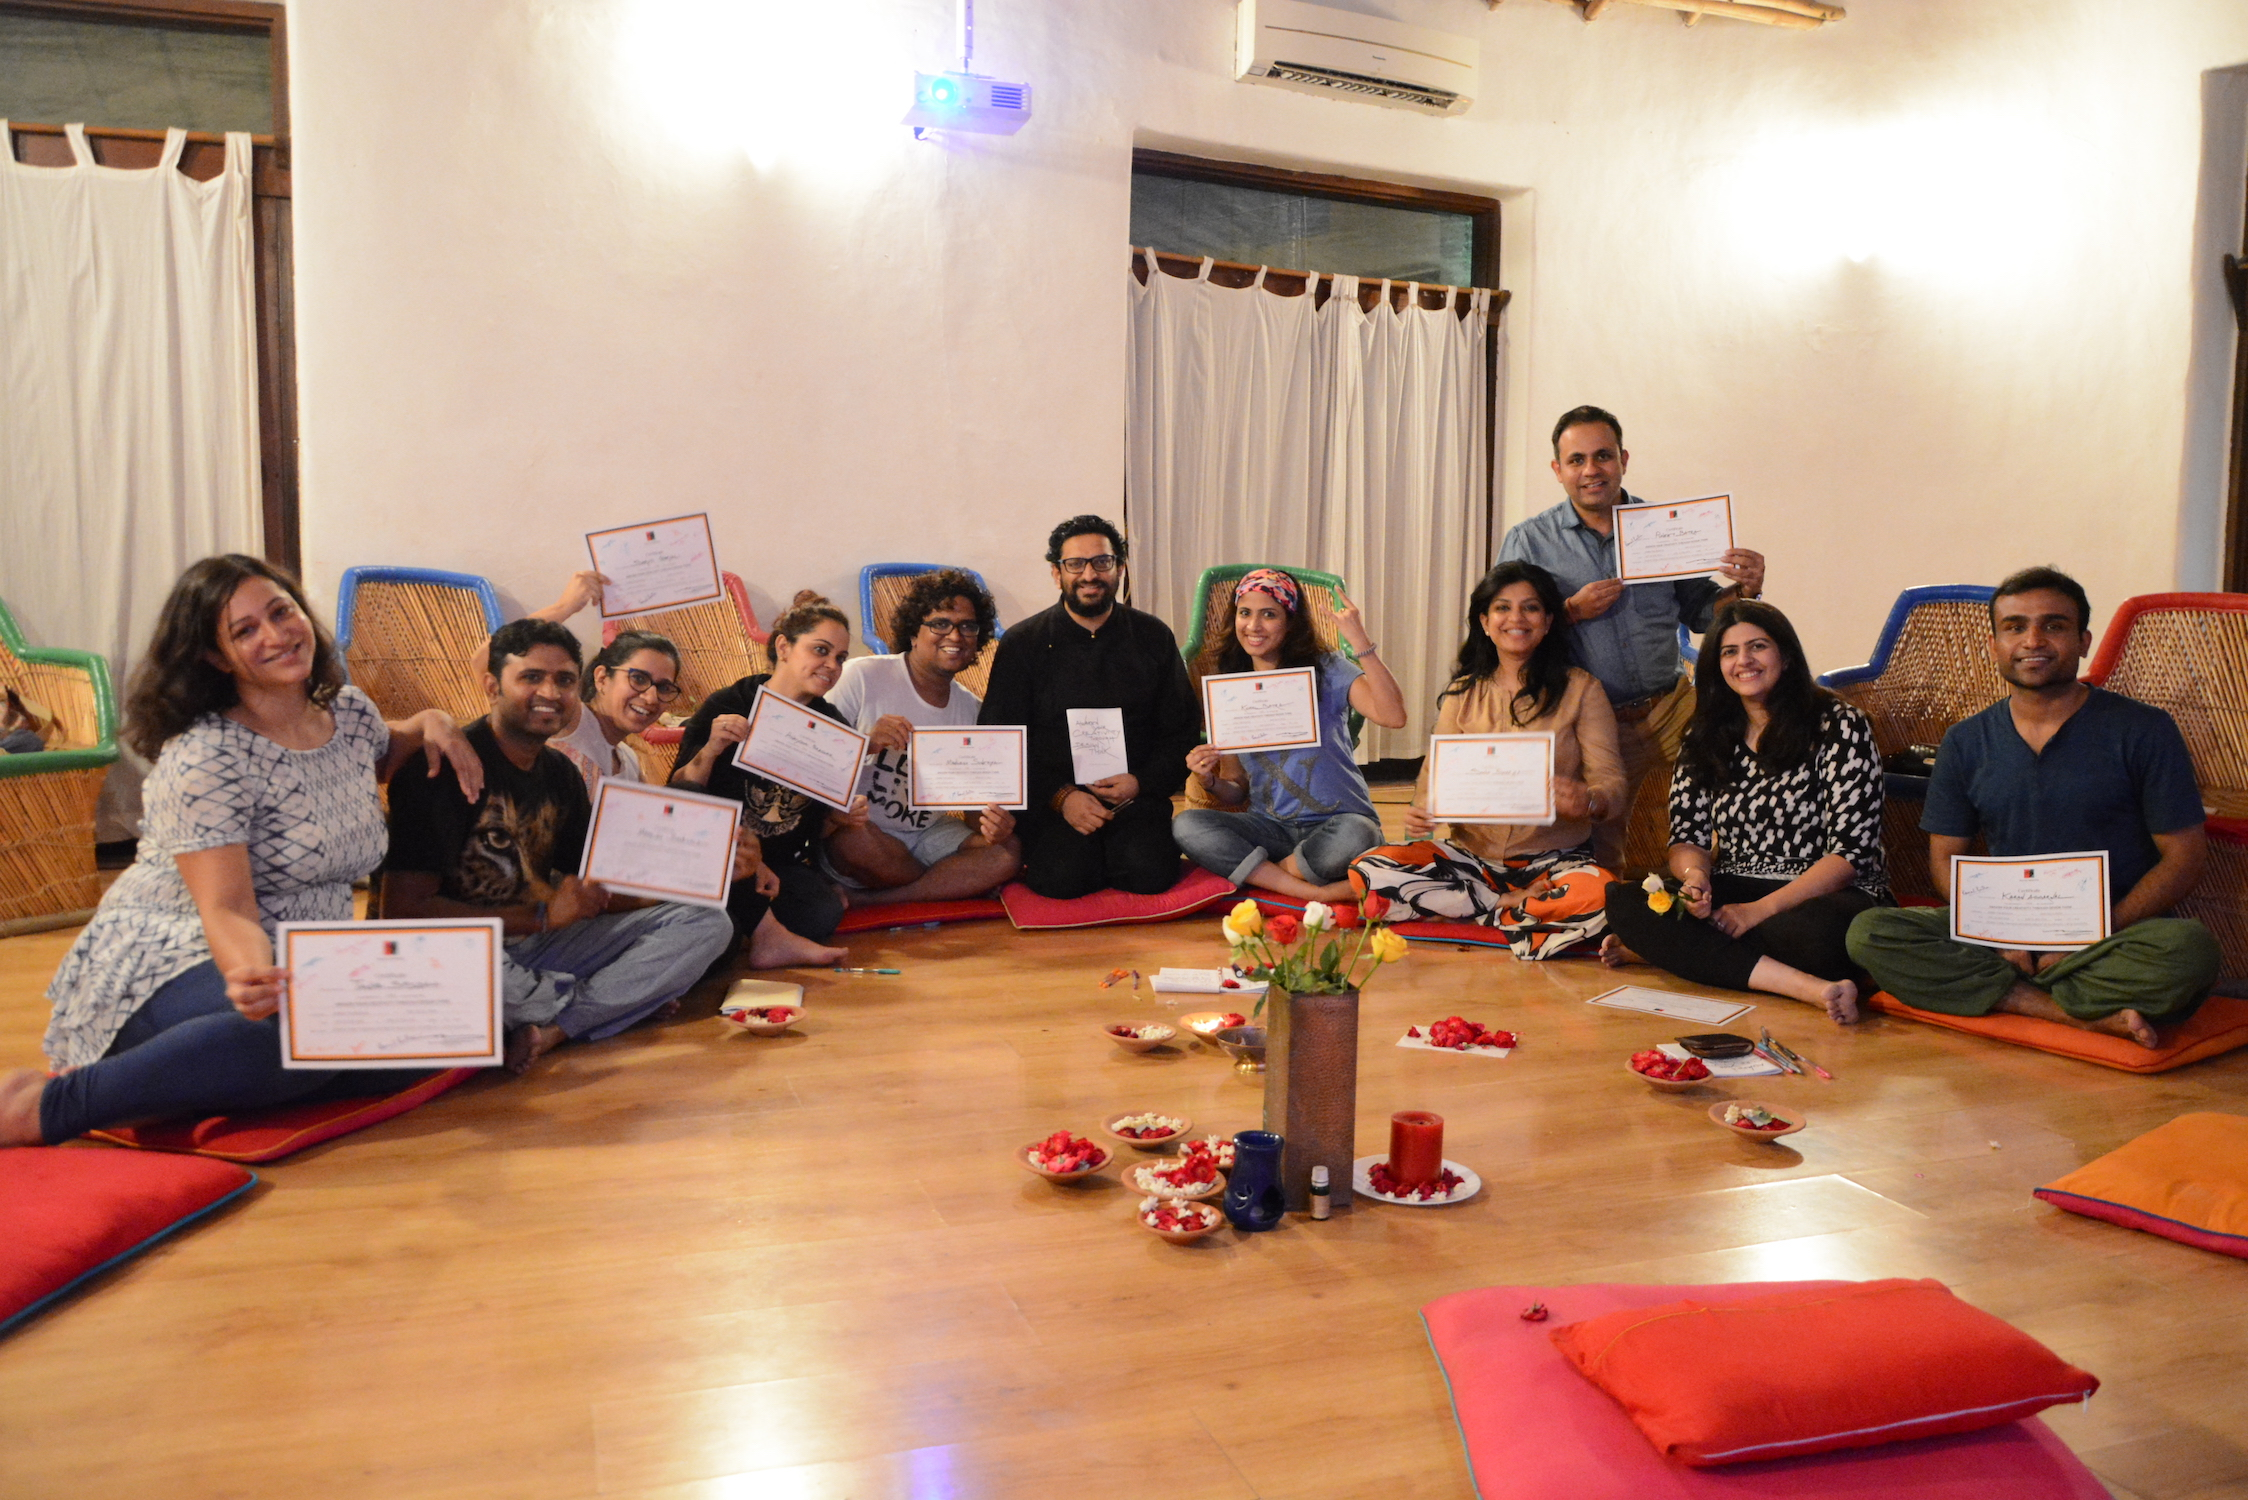 Awaken To Creativity - Meditation and Design Workshop. Aug 2016 with Niyam Bhushan